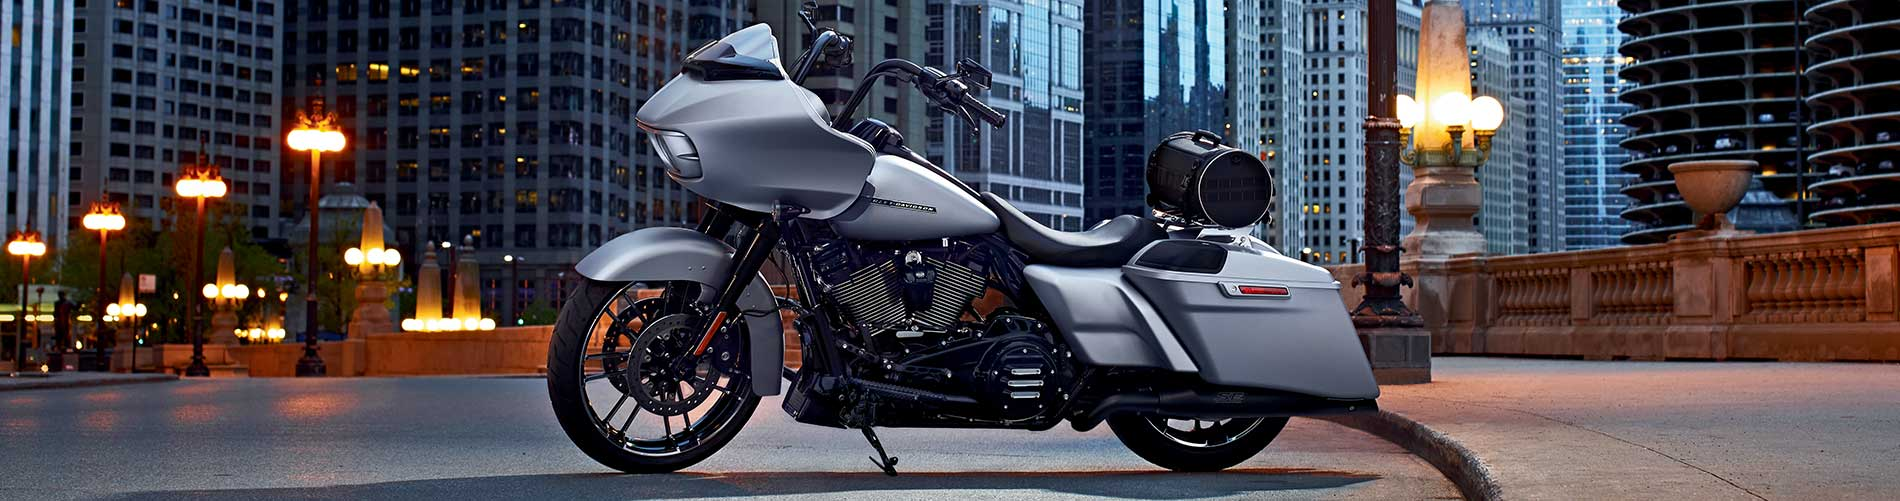 Schedule your Service with Lima Harley-Davidson